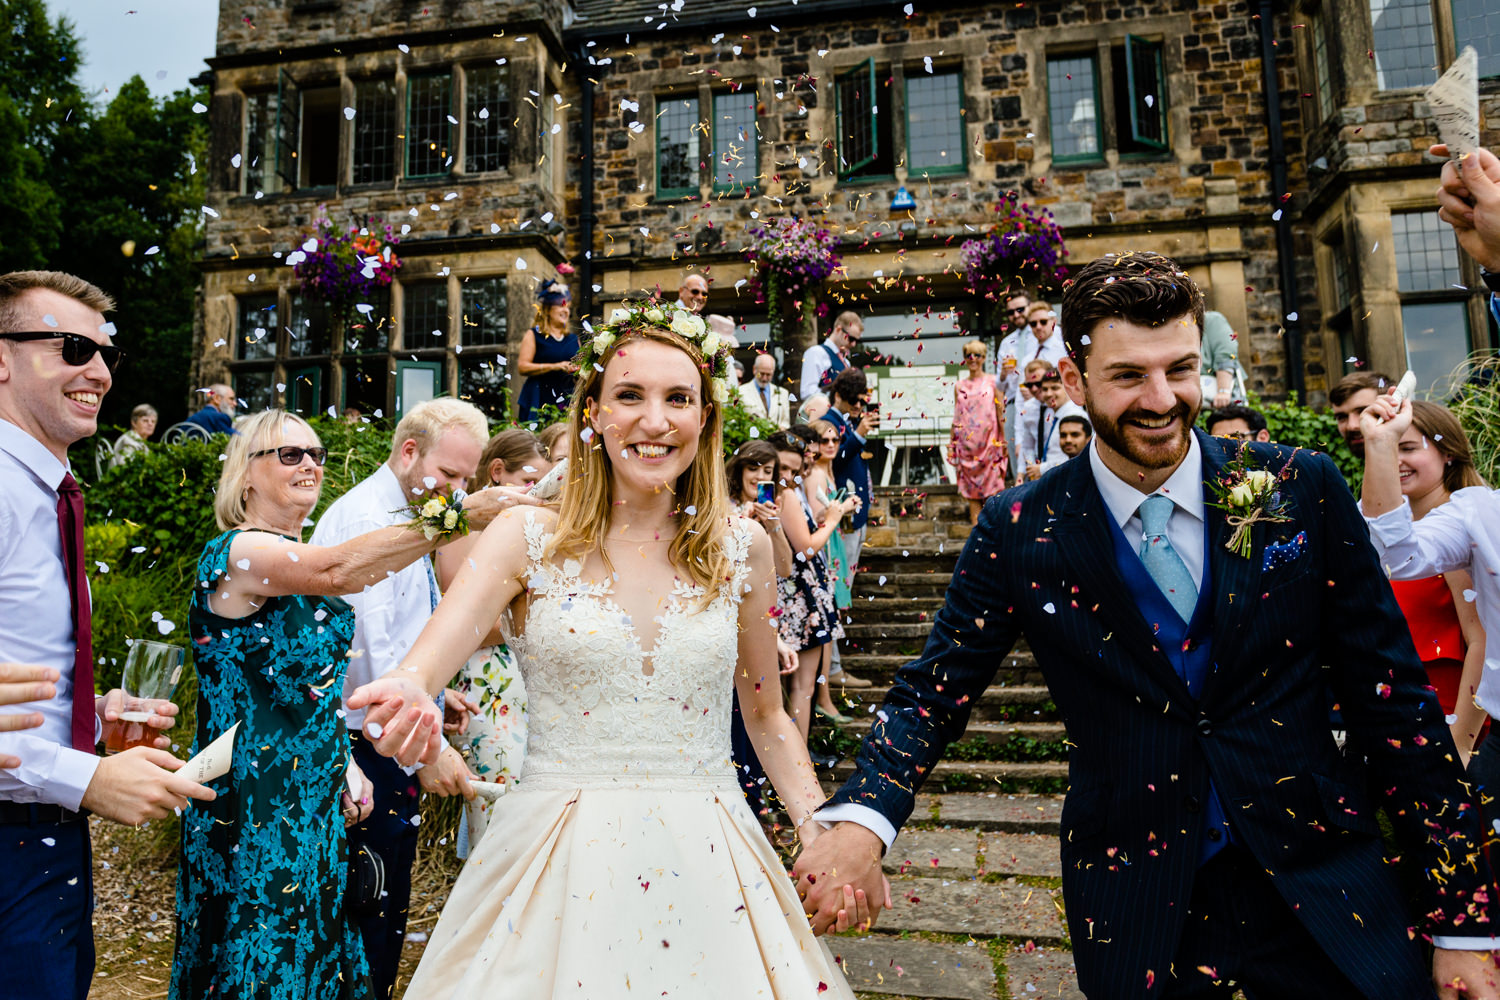 Confetti being thrown at a bride and groom, Whirlowbrook Hall wedding photo.